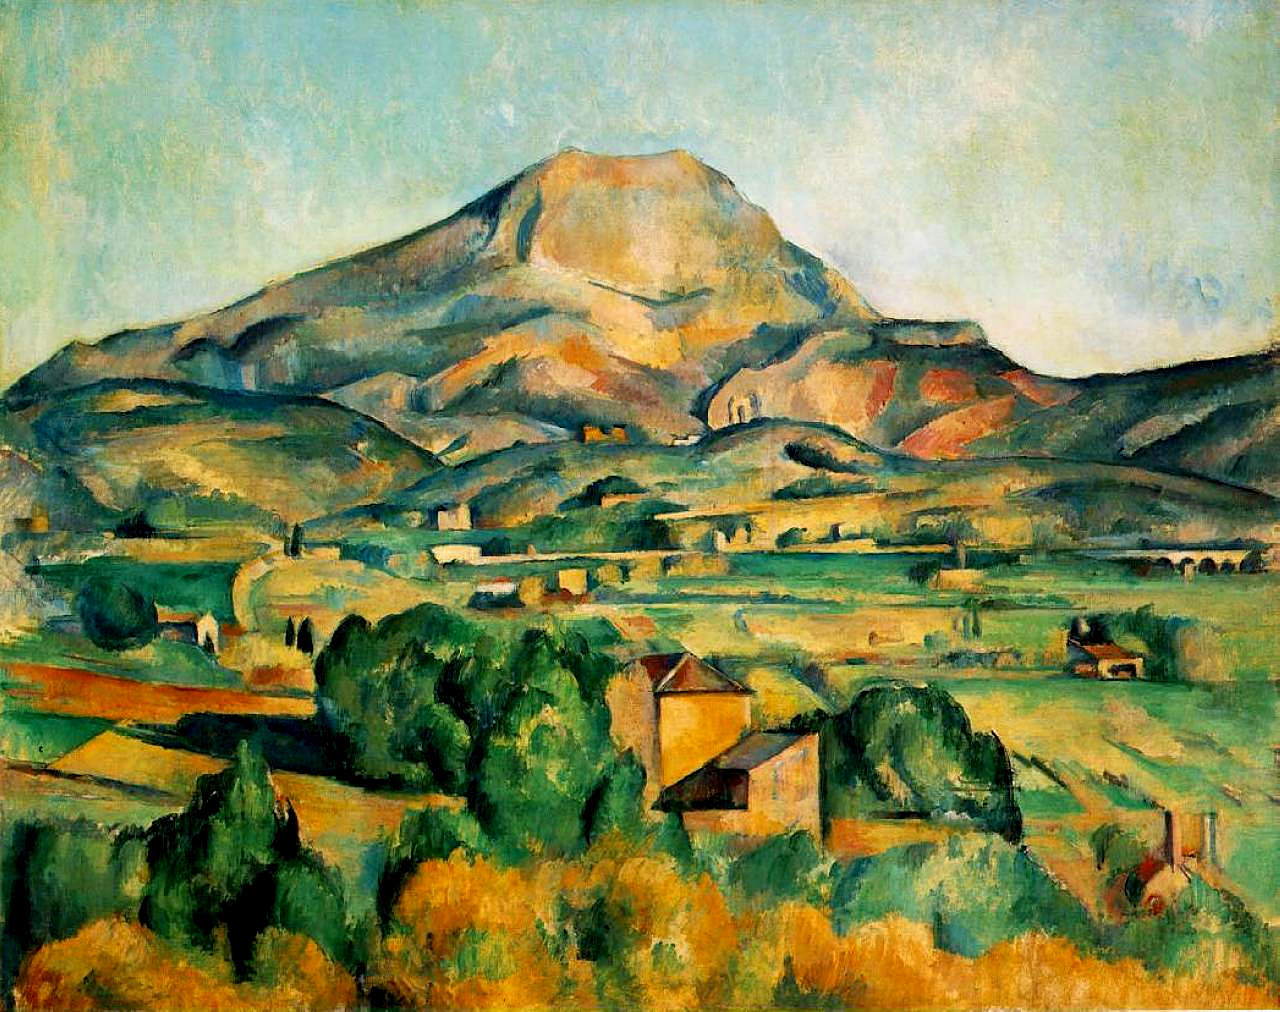 Mont SainteVictoire  Paul Cezanne  WikiArtorg  encyclopedia of visual arts